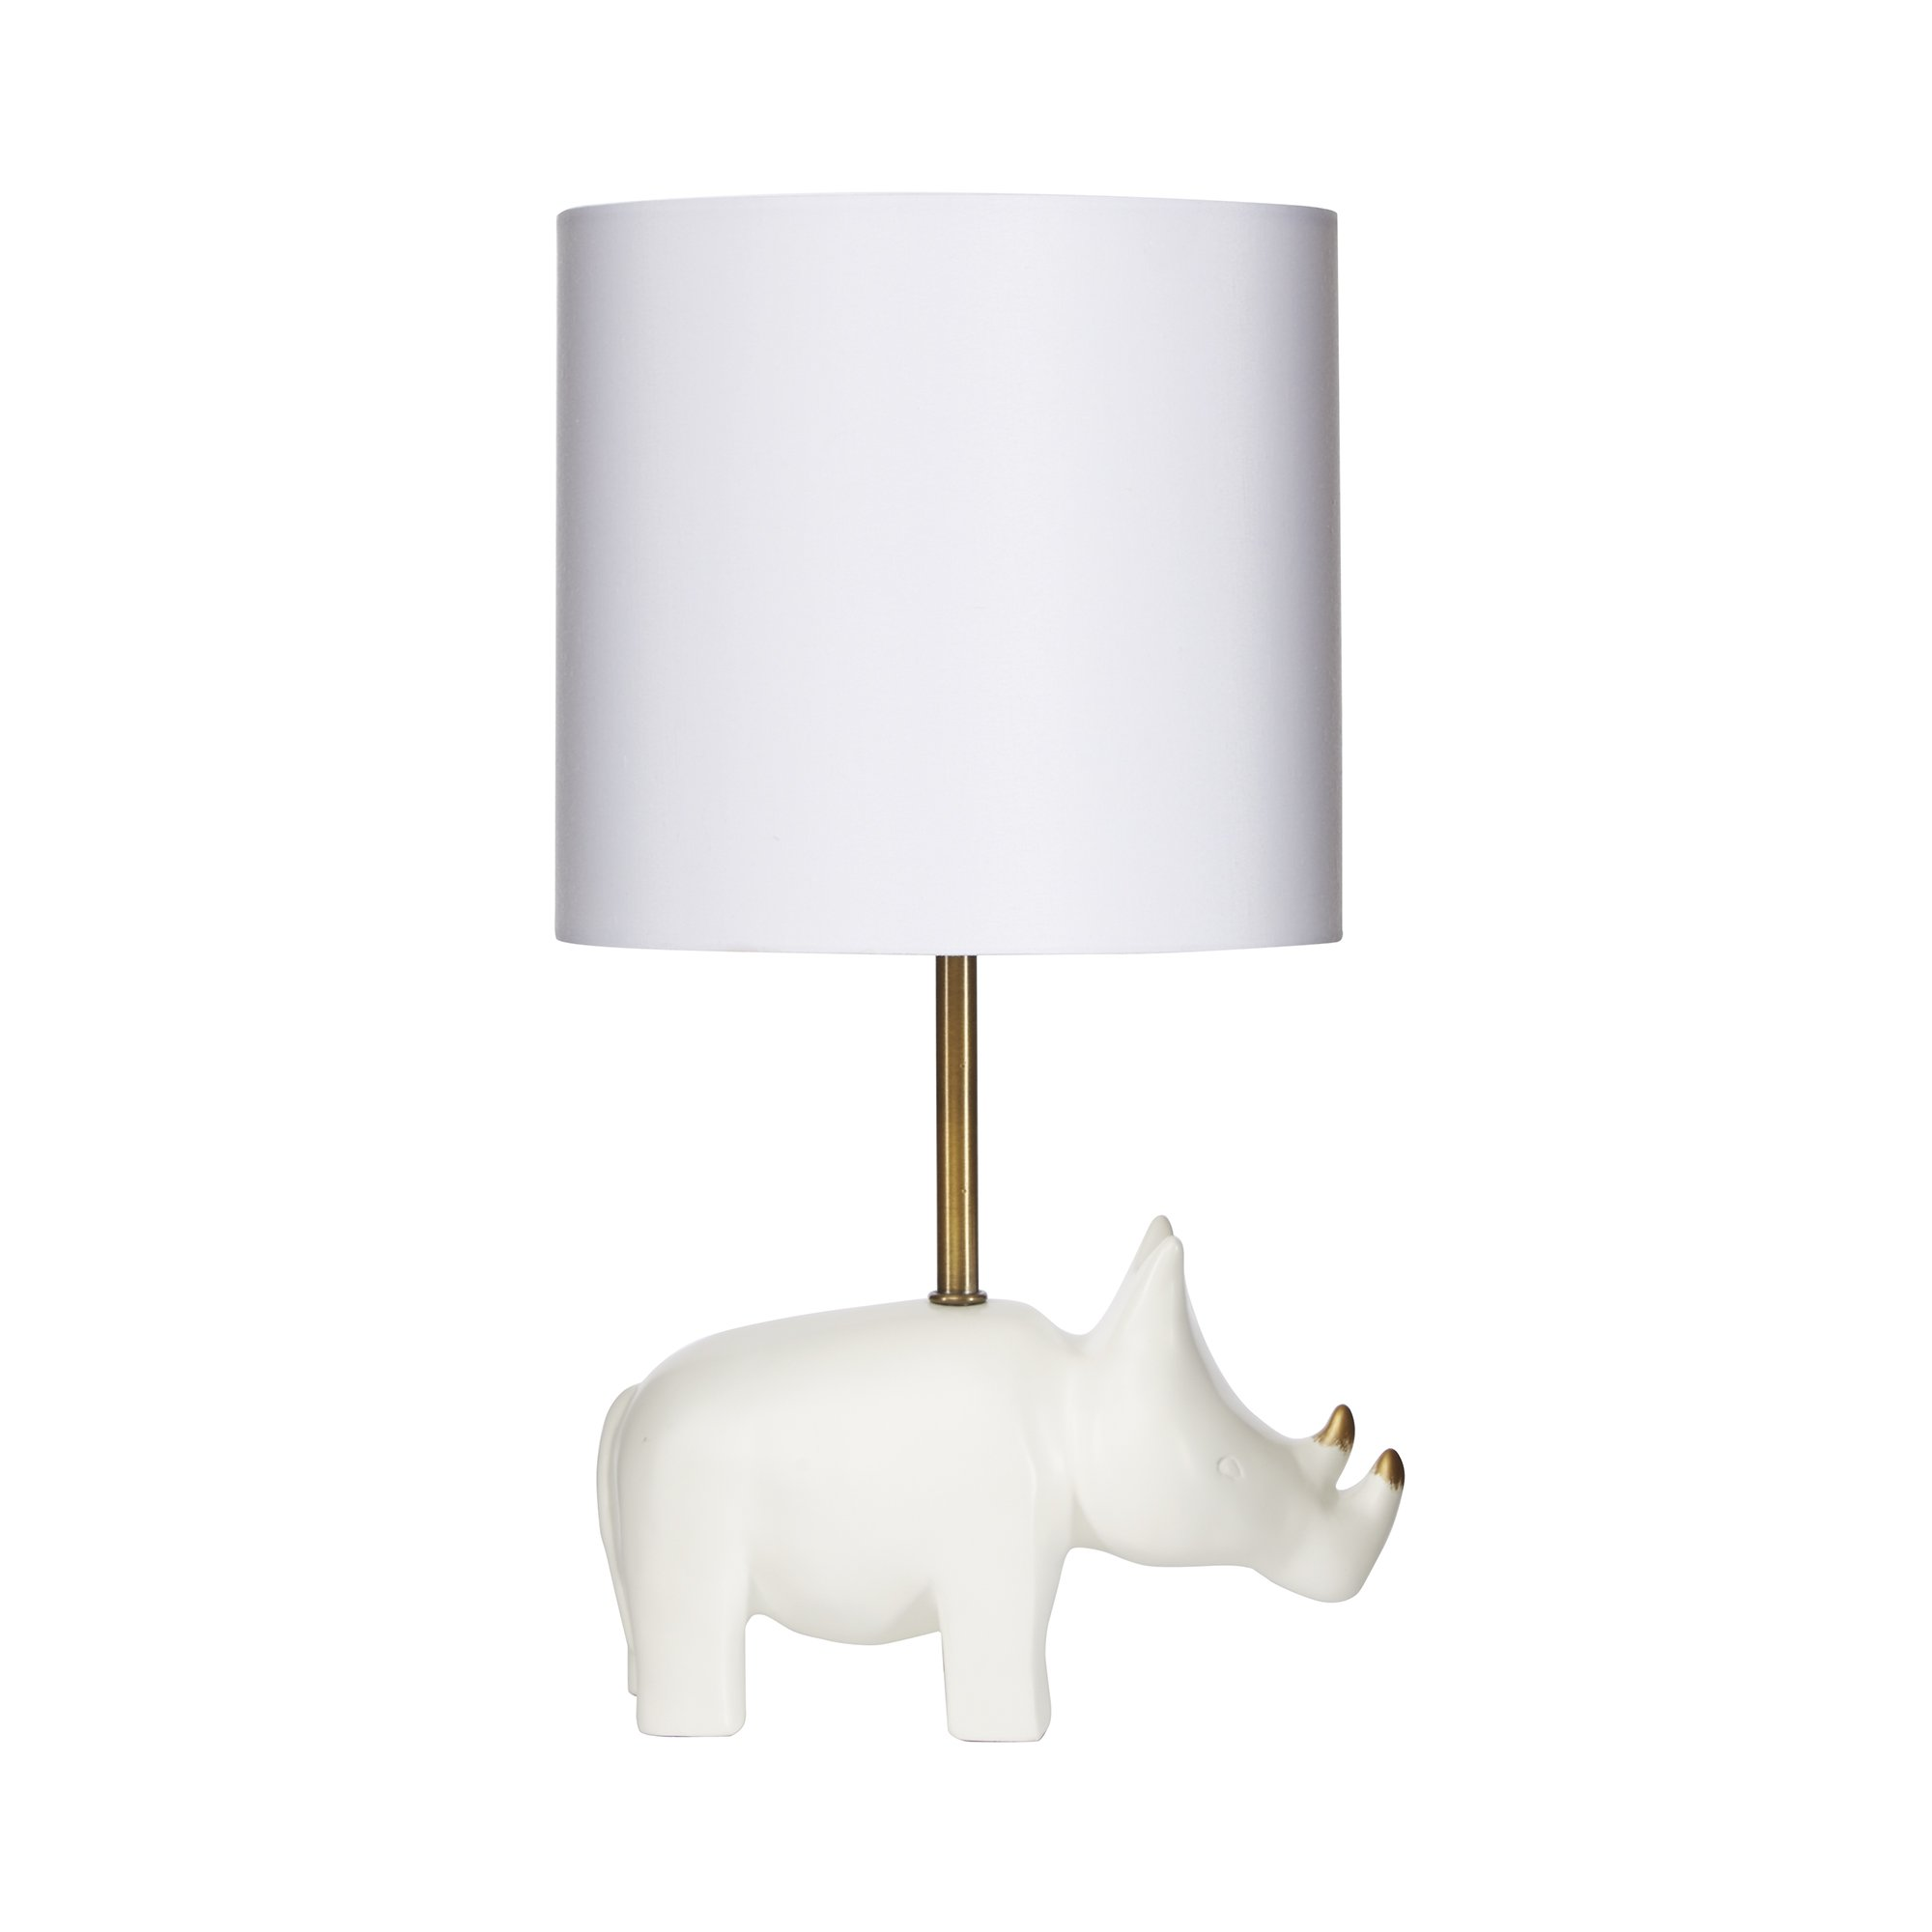 Silverwood CPLT1525 Gold Accented Rhino Resin Table Lamp, 16'' H, White